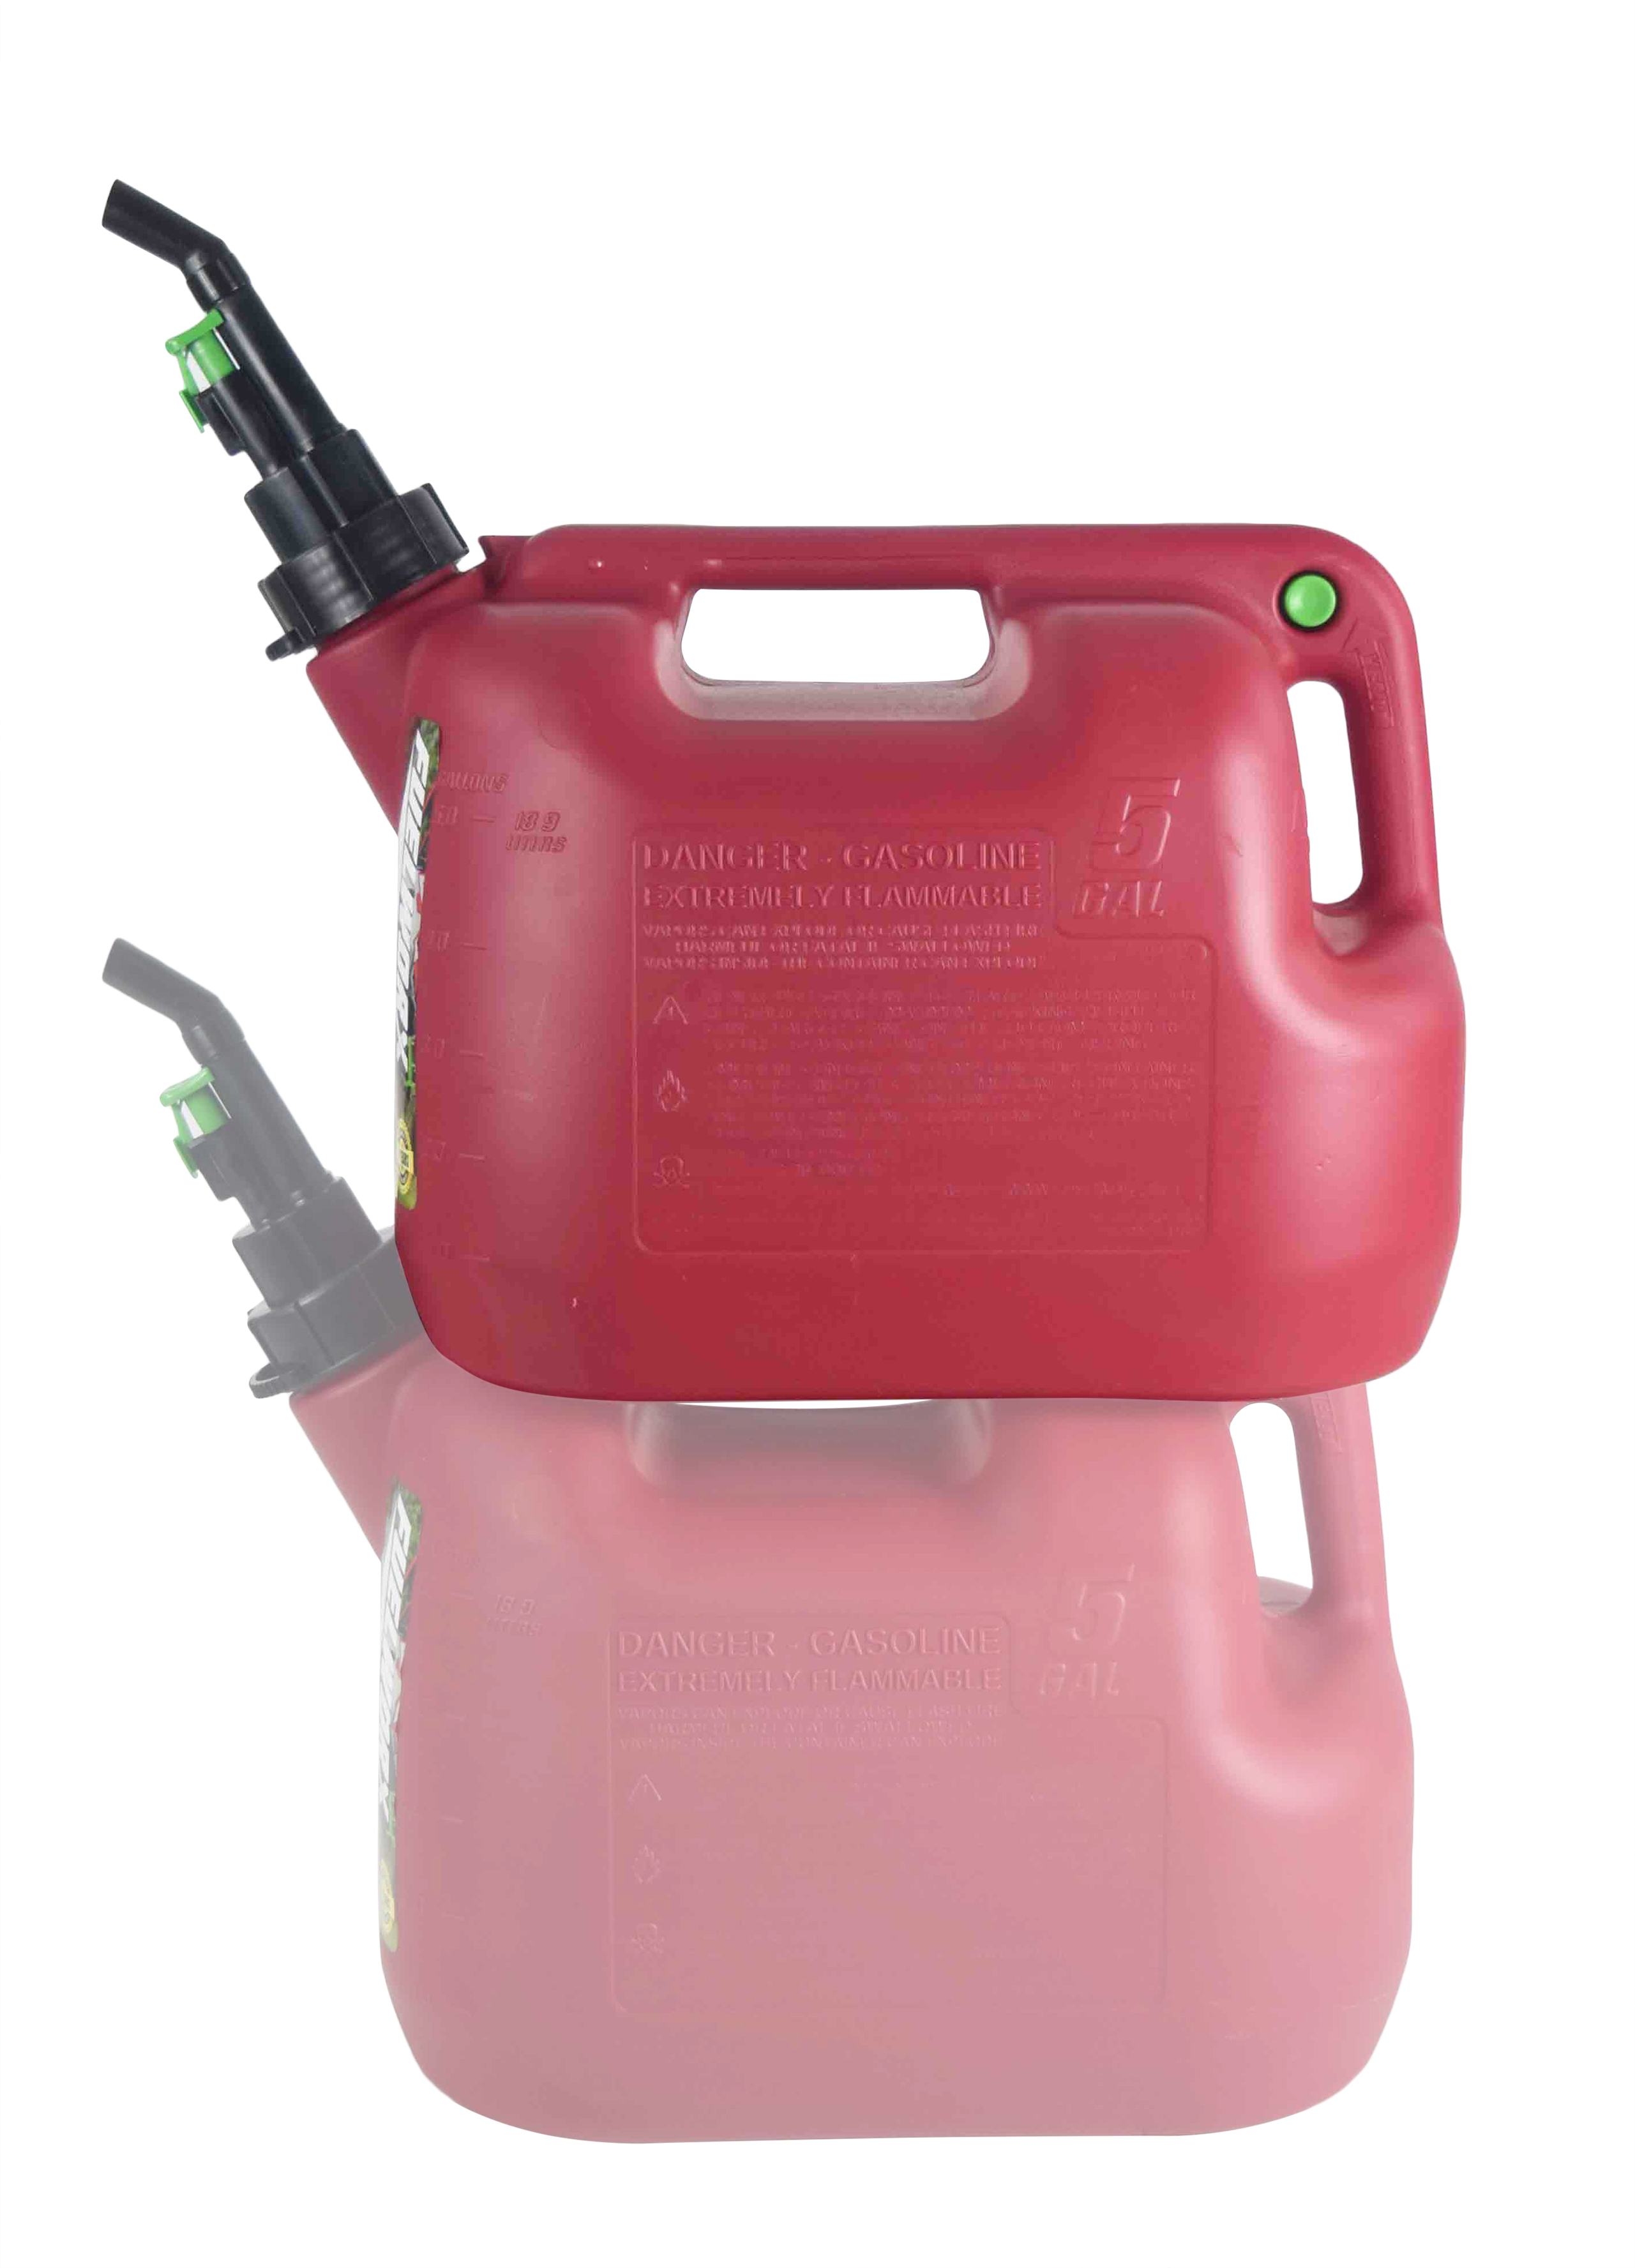 Fuelworx-Red-5-Gallon-Stackable-Fast-Pour-Gas-Fuel-Can-CARB-Compliant-Made-in-The-USA-5-Gallon-Gas-Can-Single-image-1